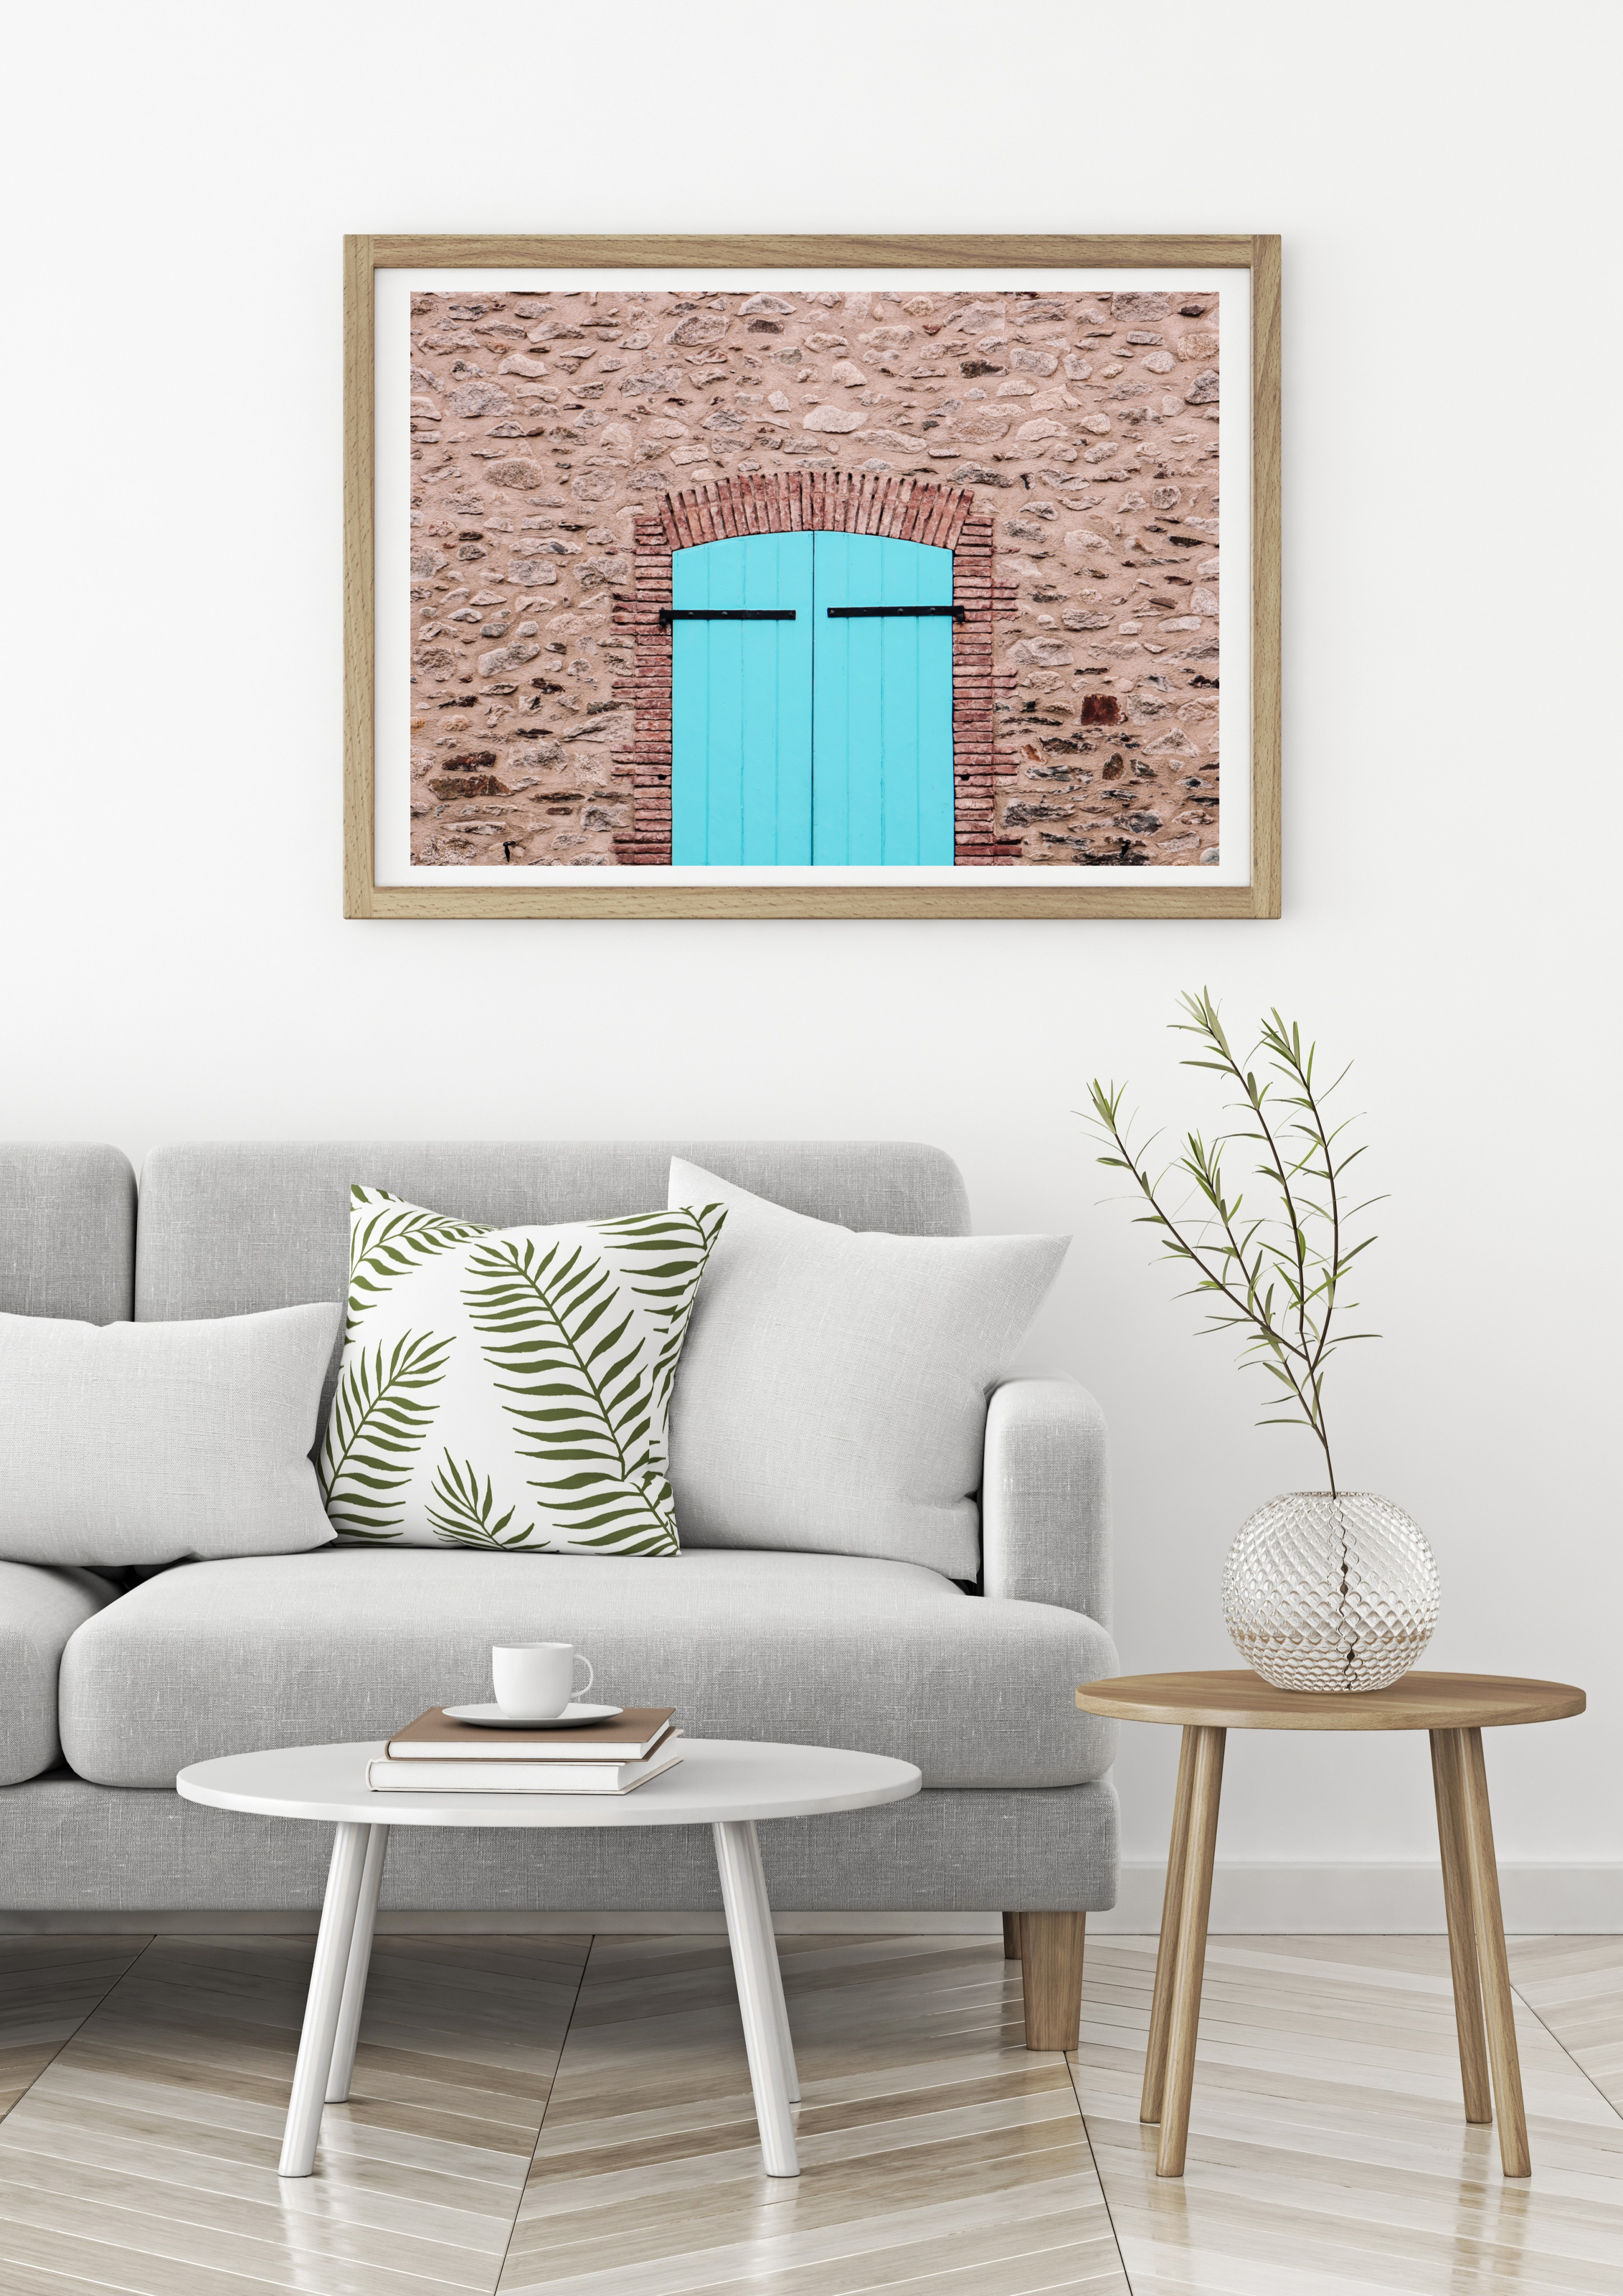 Turquoise door village spain wall print